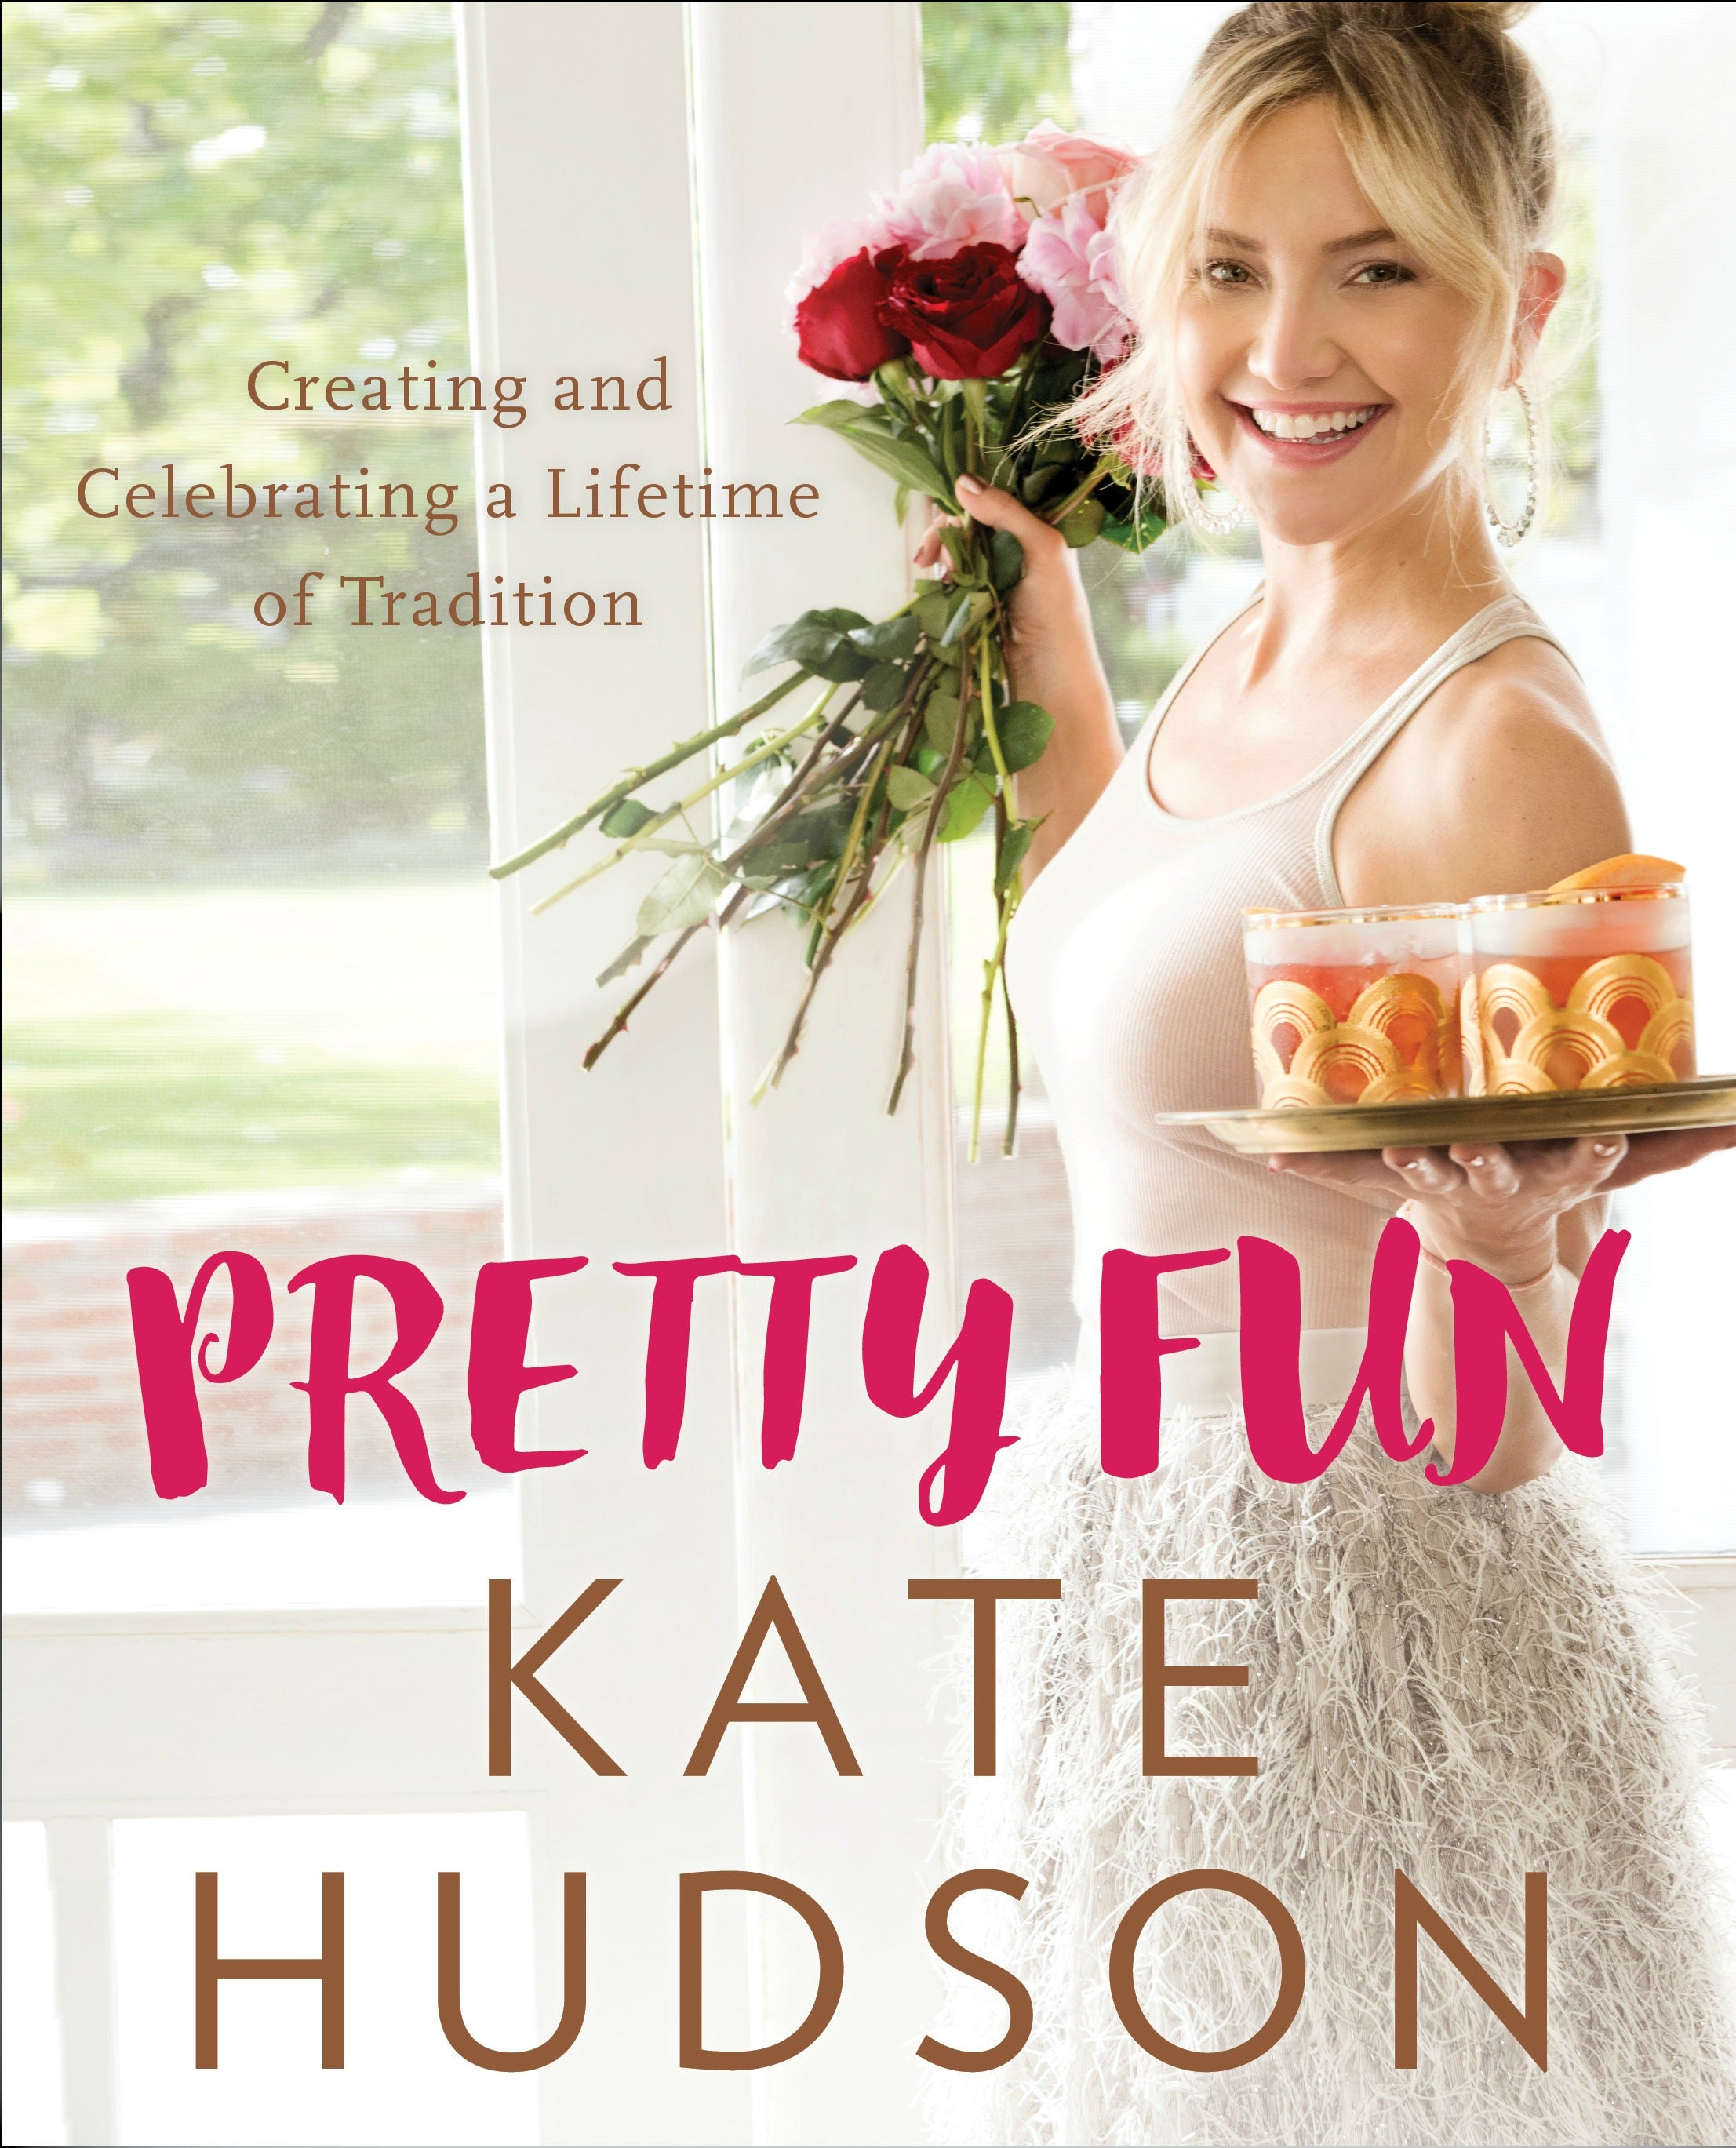 Pretty Book Cover Zone : Kate hudson reveals her family s one dinner rule and shares